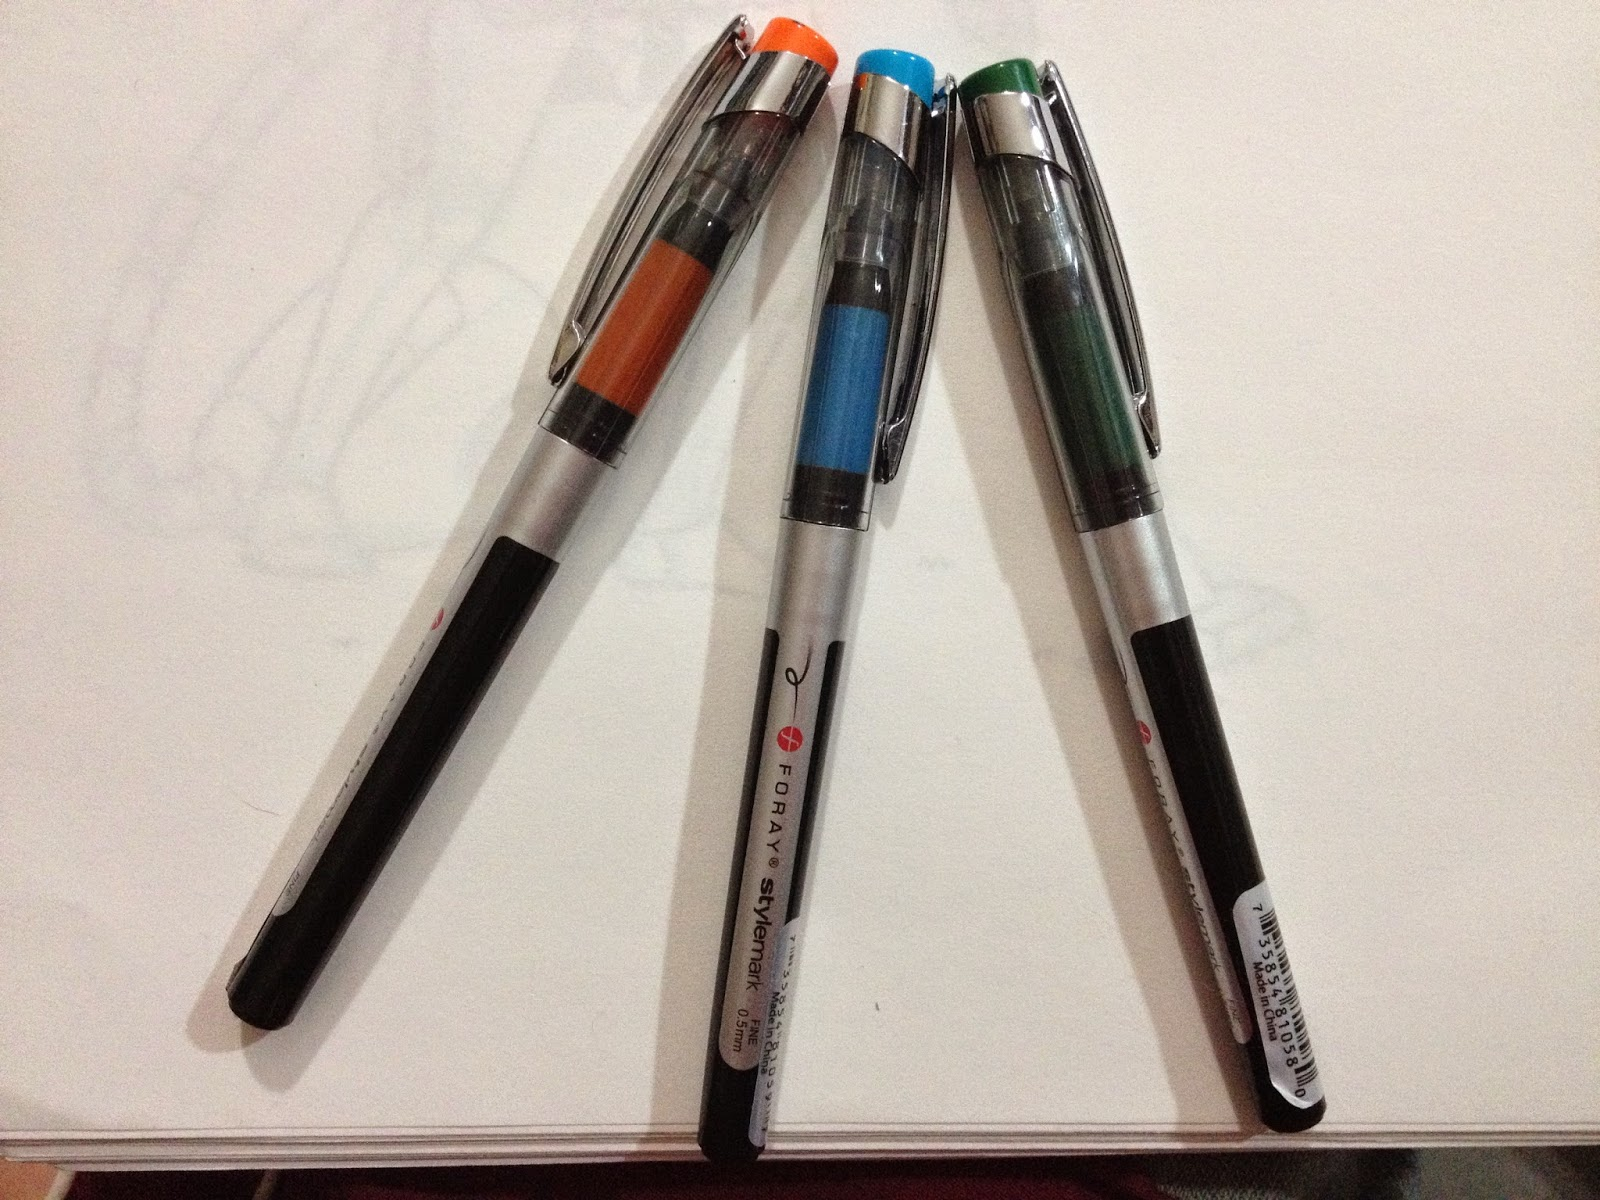 My Office Depot Had Three Colors Of Foray Stylemark Fineliners Left So I Bought One Each